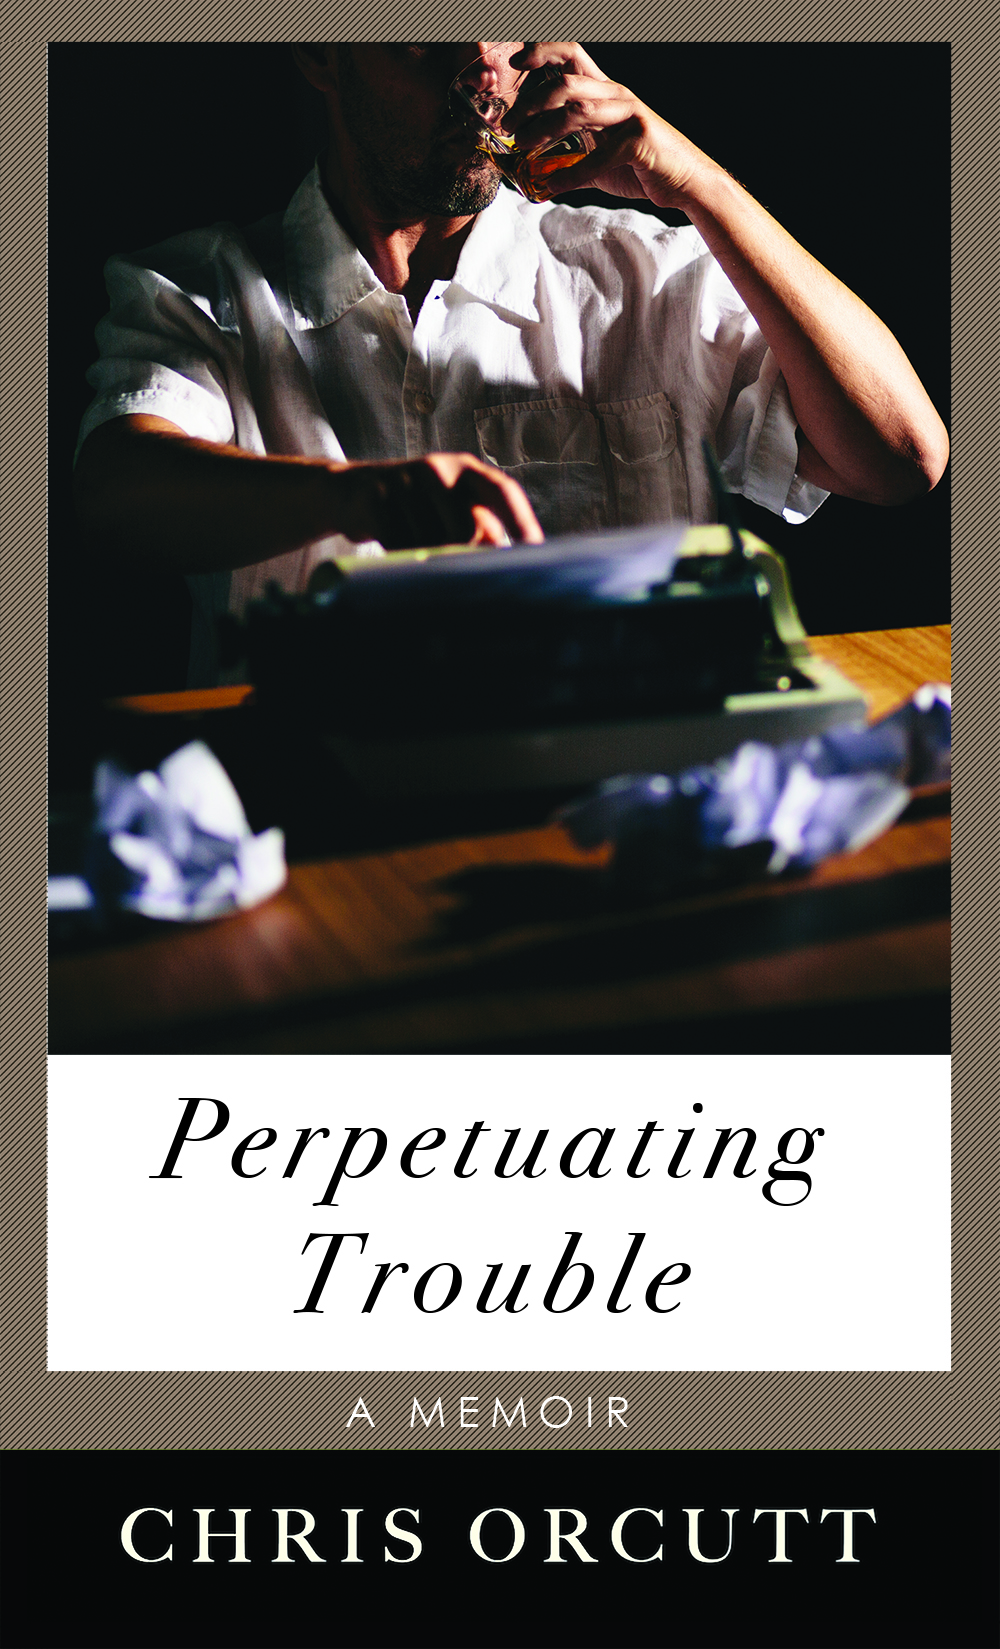 Perpetuating_Trouble_cover_300dpi